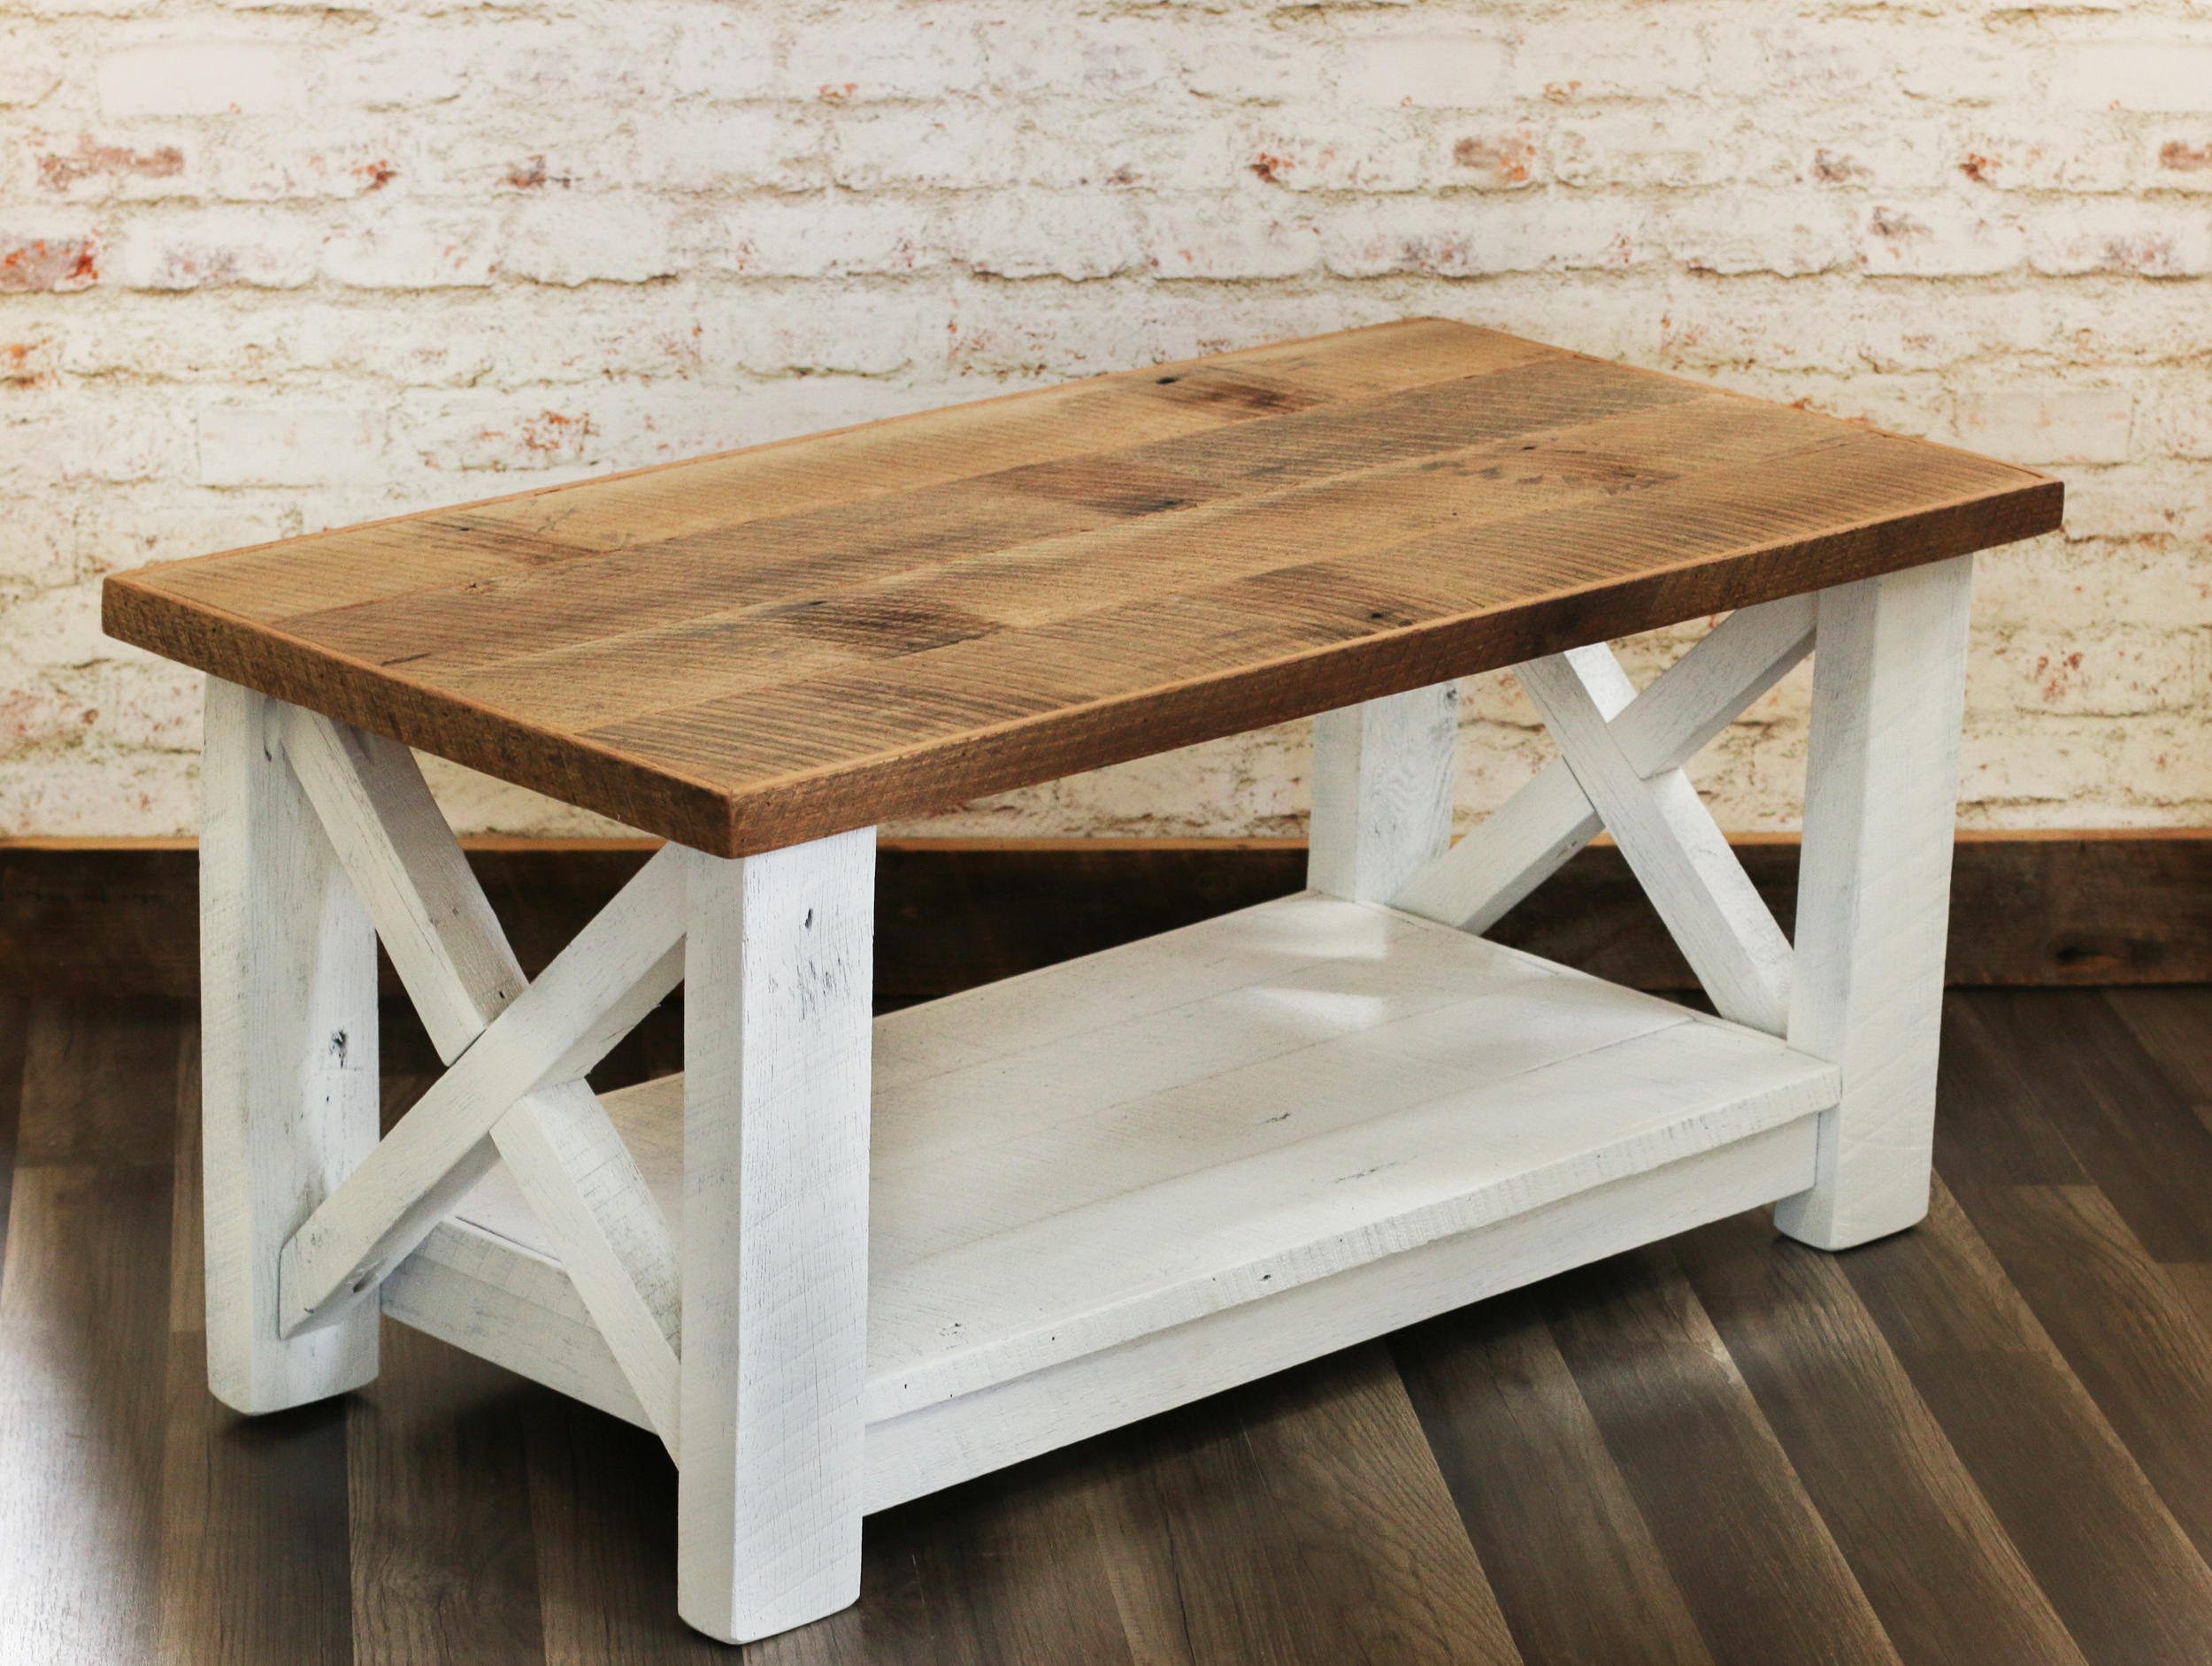 Farmhouse Coffee Table Made From Reclaimed Wood X Detail Etsy in proportions 2500 X 1883